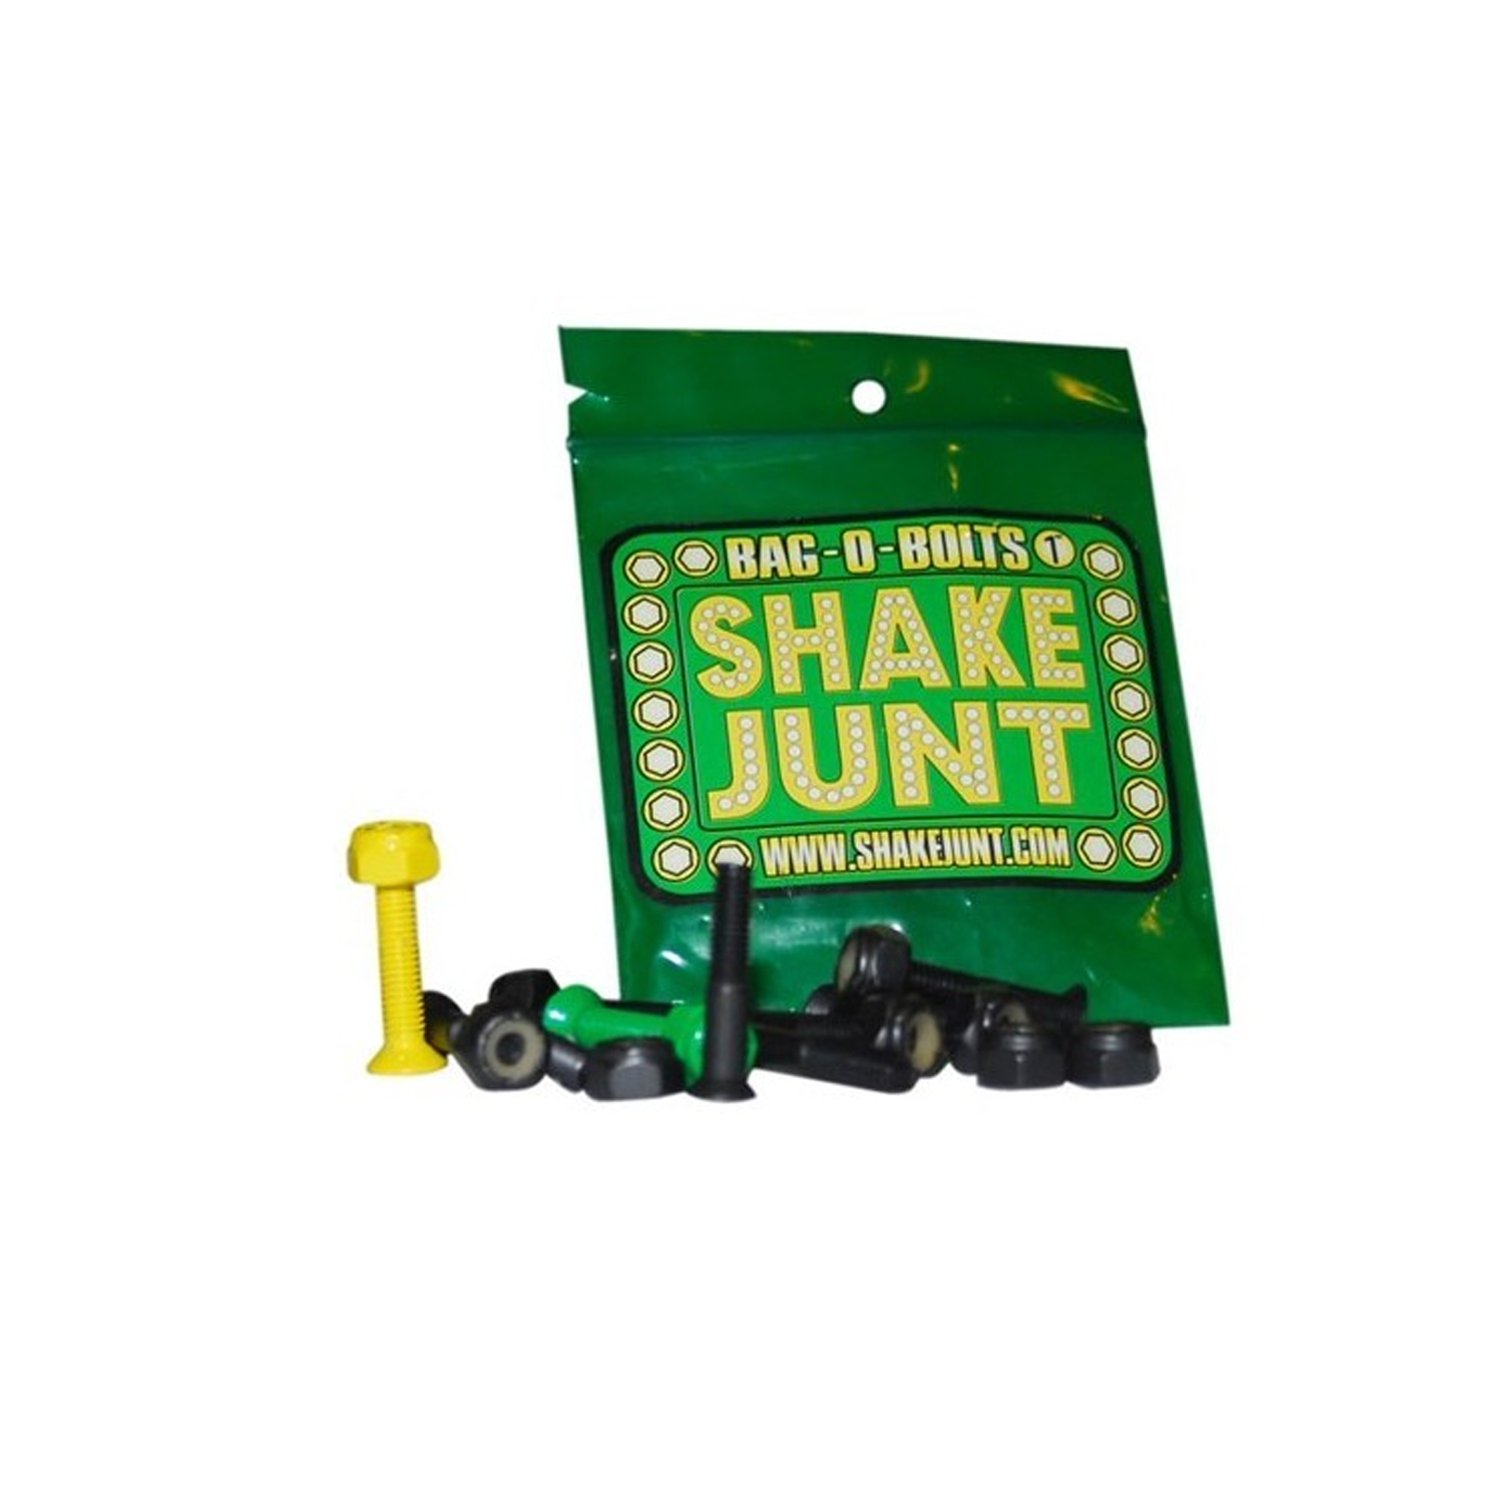 人気ブランドの Shake by Junt Bag Hardware B006T6LED6 O Bolts Black Green Yellow 7/8(allen) 1set Skateboarding Hardware by Shake Junt B006T6LED6, Zakcafe:984220ef --- svecha37.ru